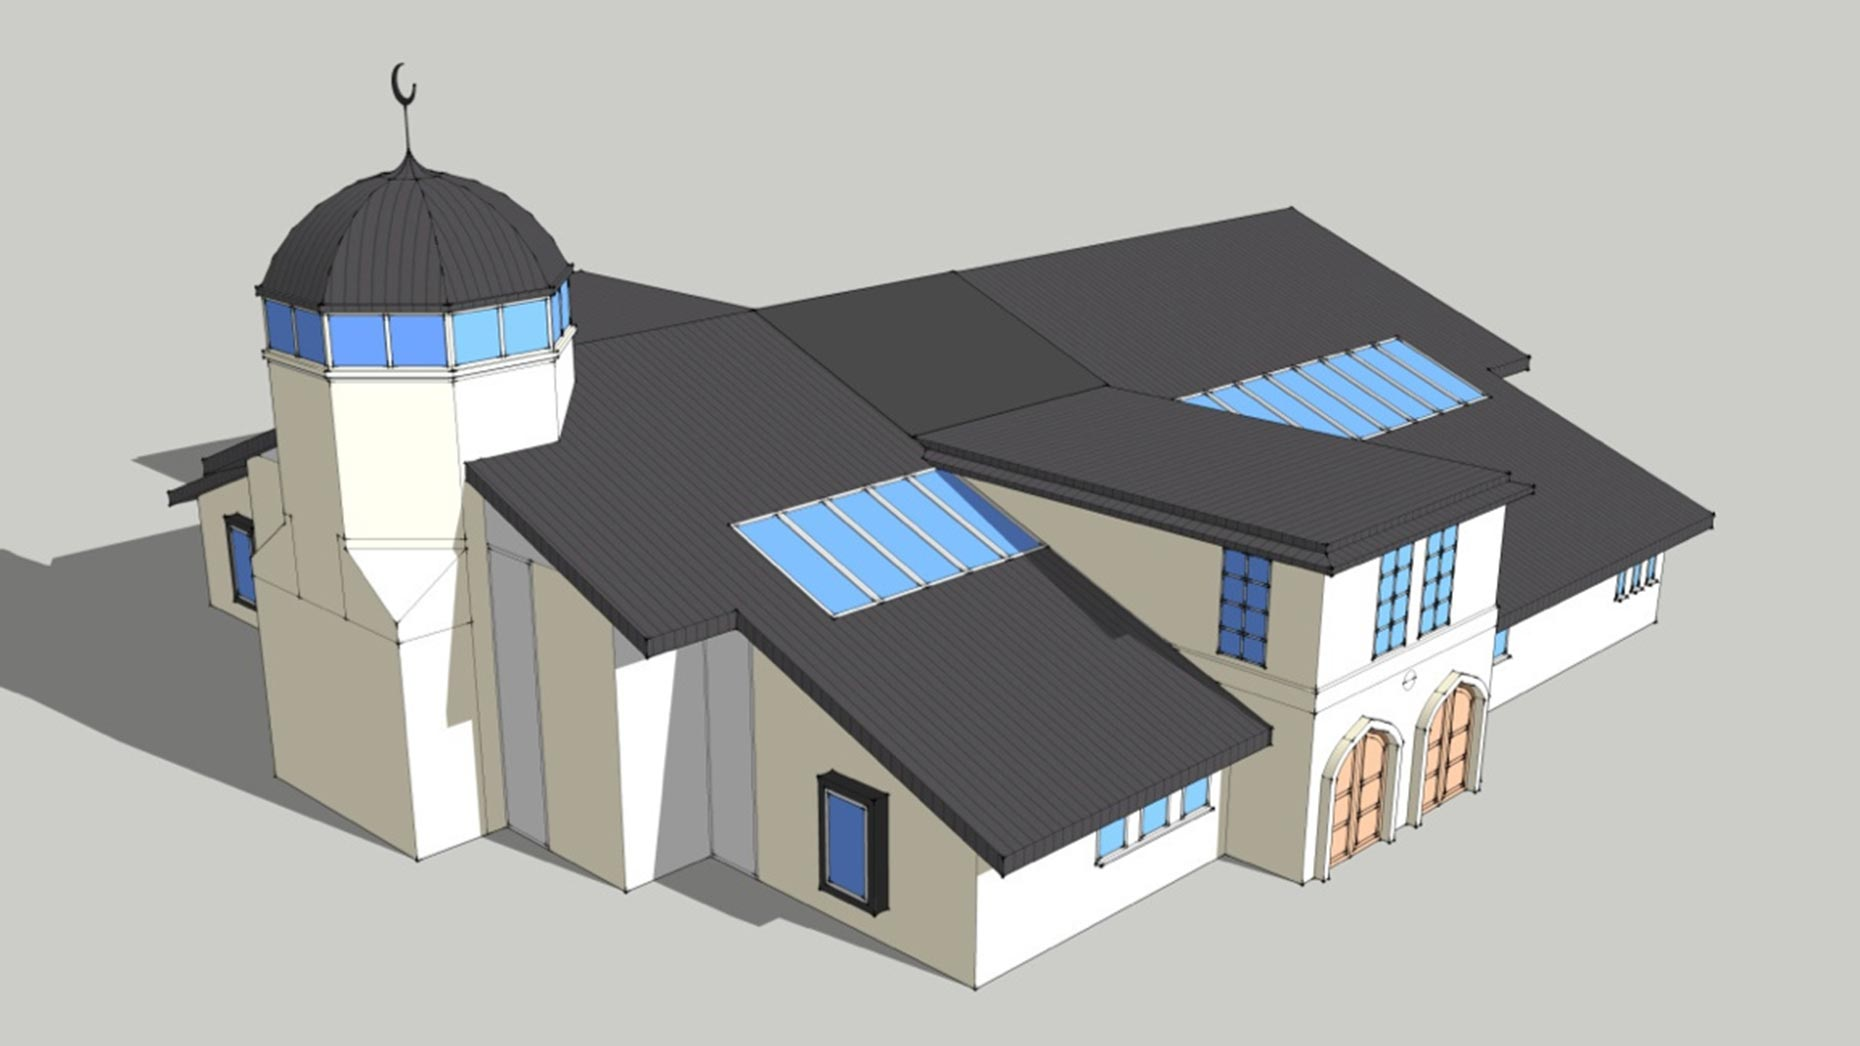 The latest Lincoln mosque designs